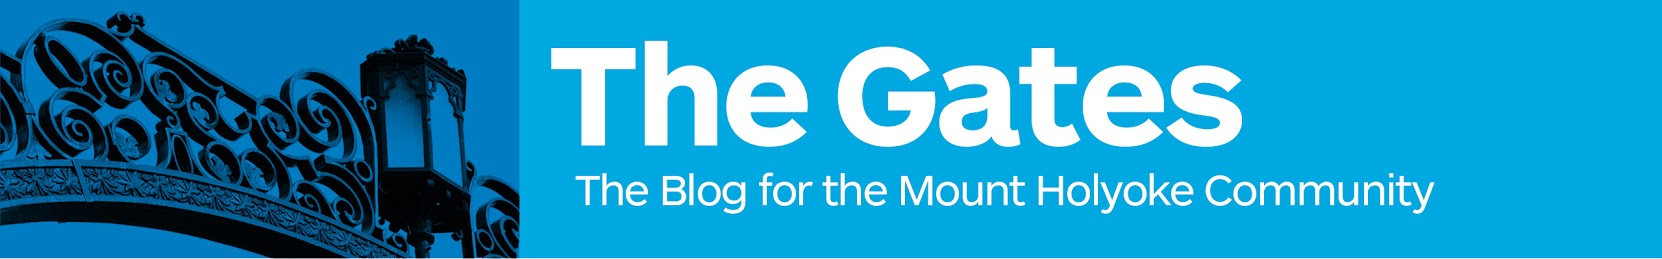 Banner image for the Gates blog